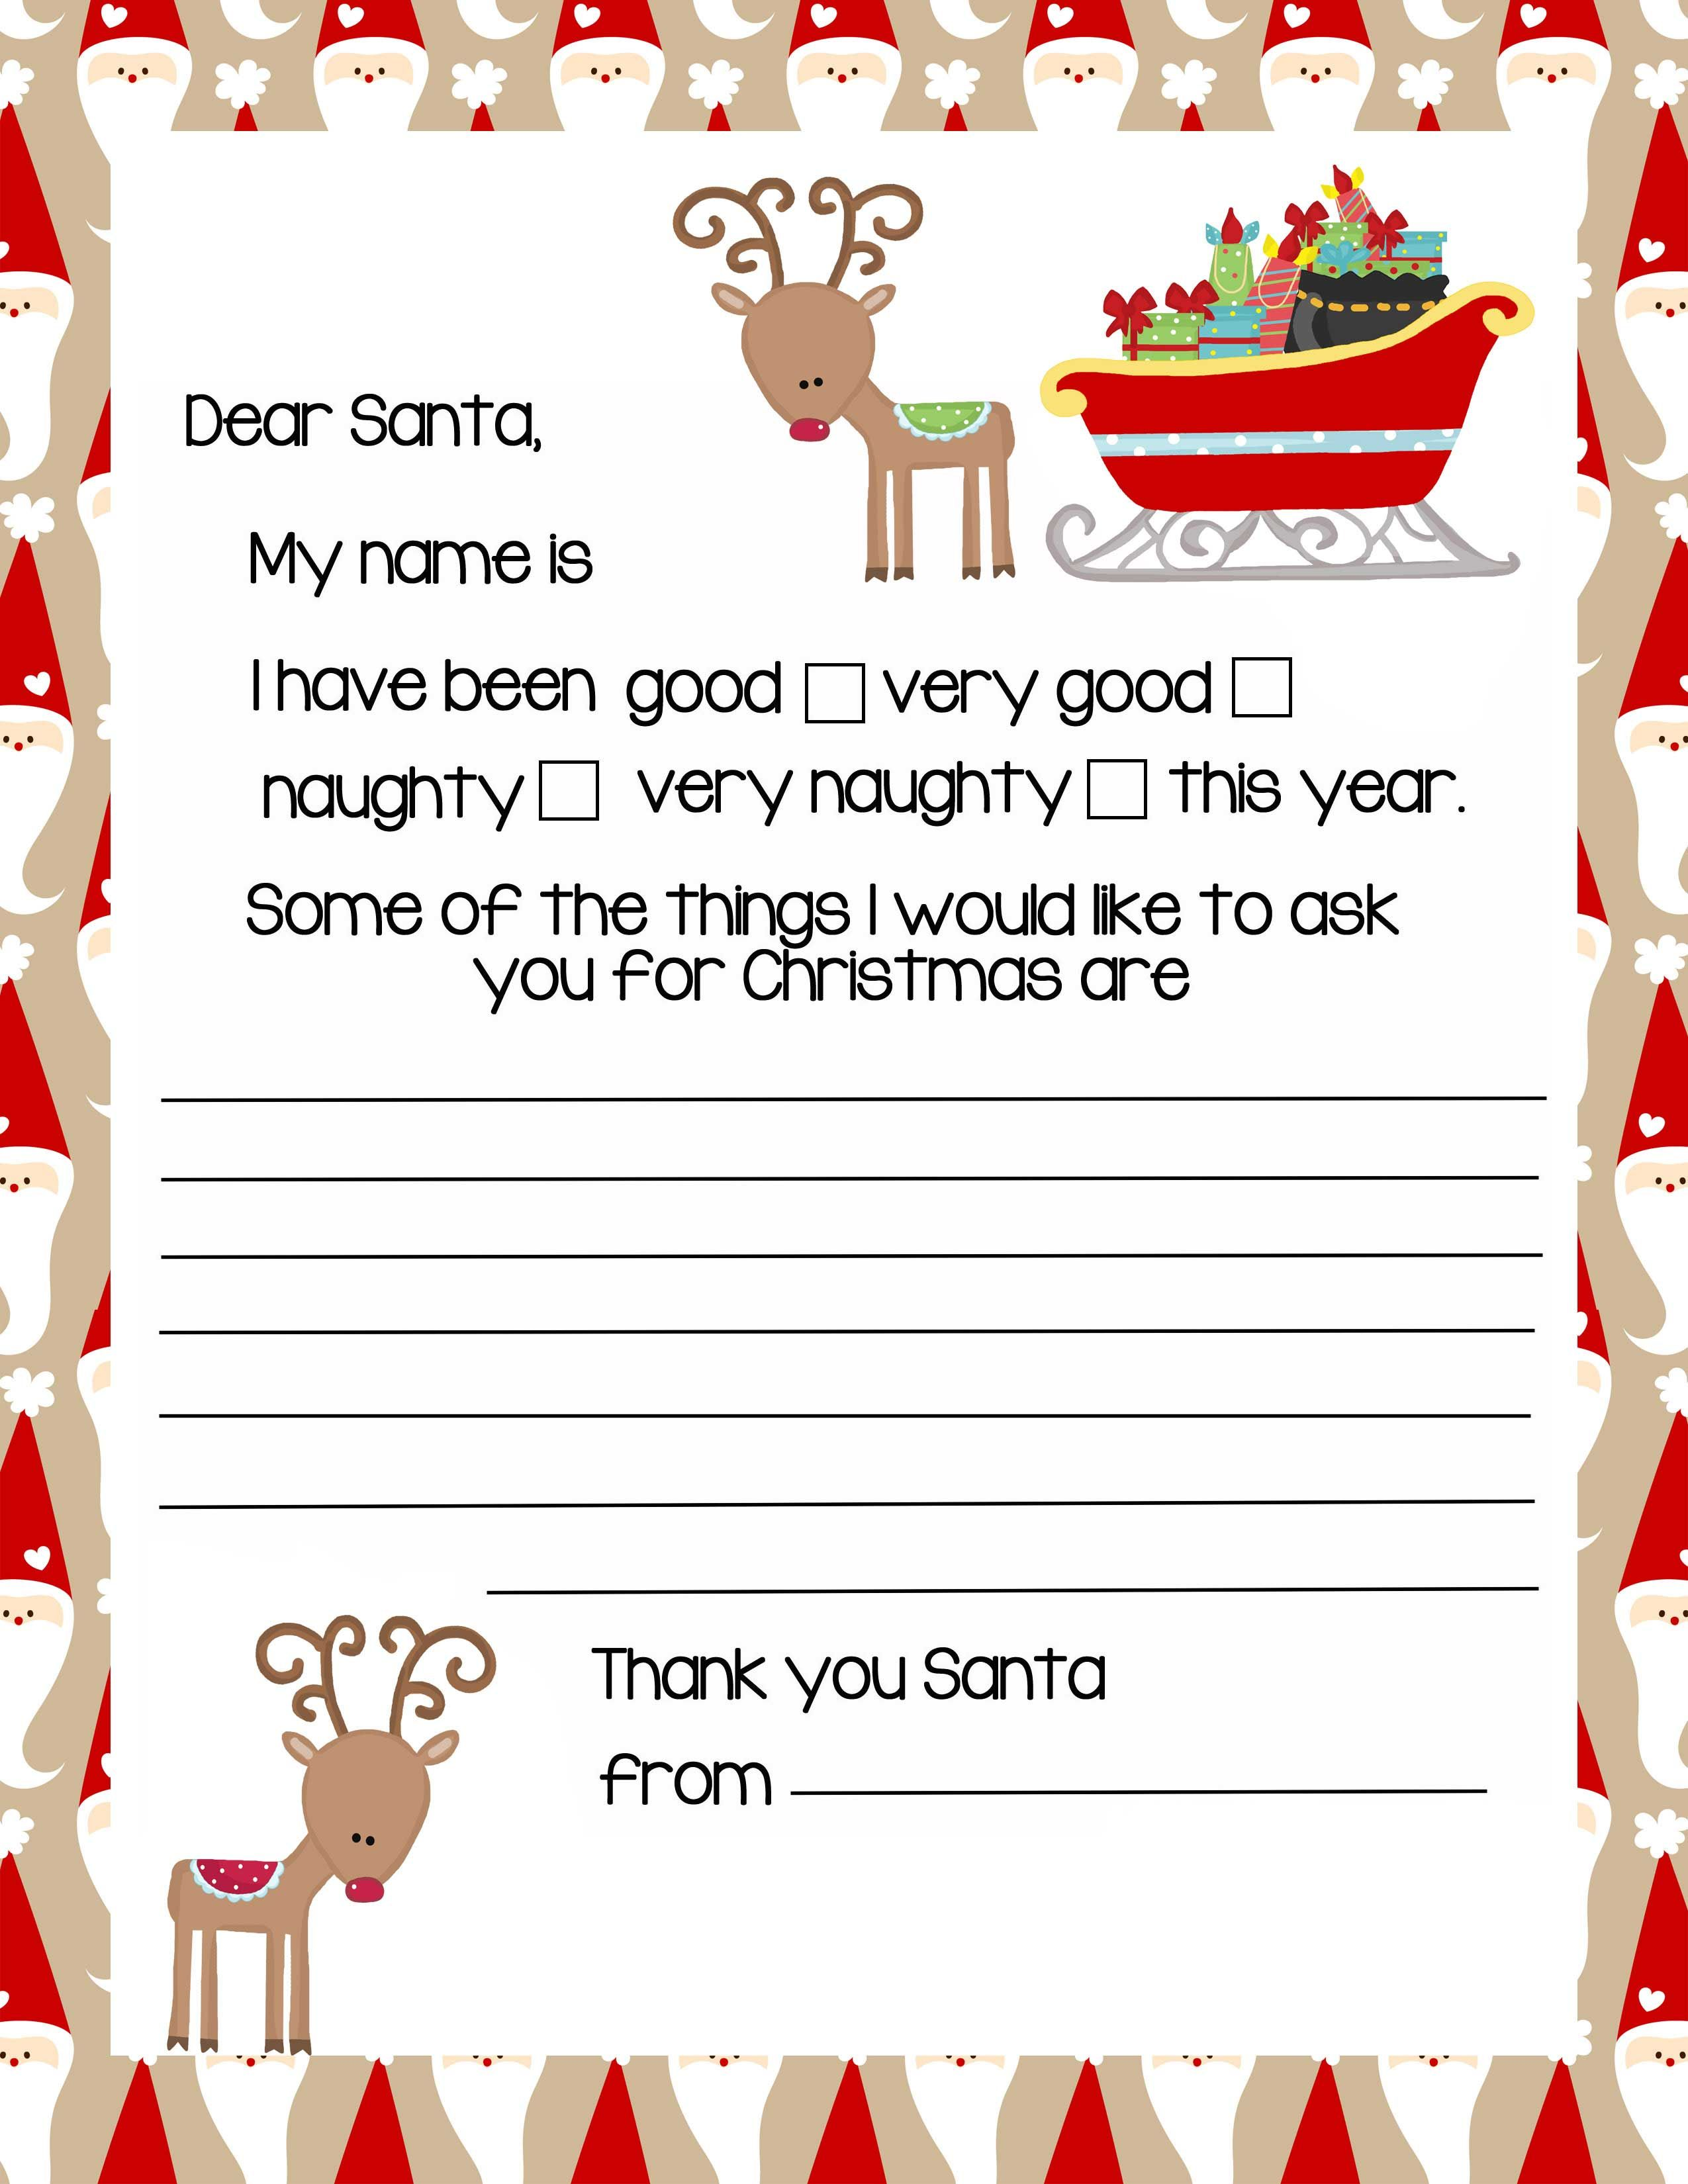 Reindeer Letter To Santa Claus With Images